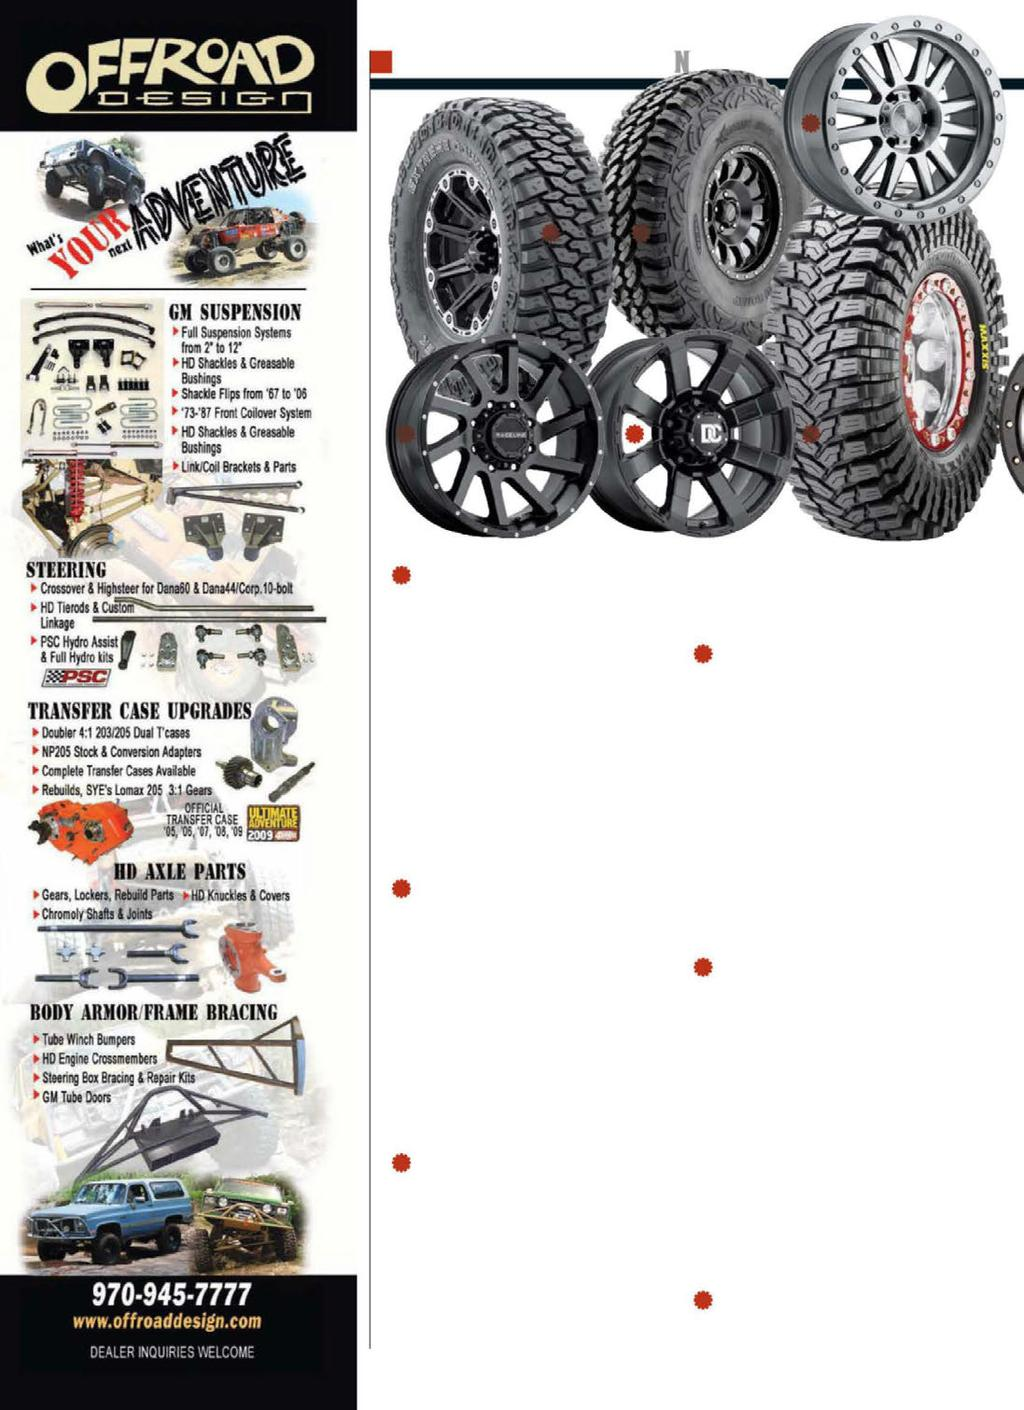 Wheel Your Tow Rig Massive Tire Big Mickeys Friendly Pit Bulls Prospeed Sx Series Yamaha Xride Black Full Keep On Turnin 19 15 17 16 18 20 Dick Cepek Extreme Country